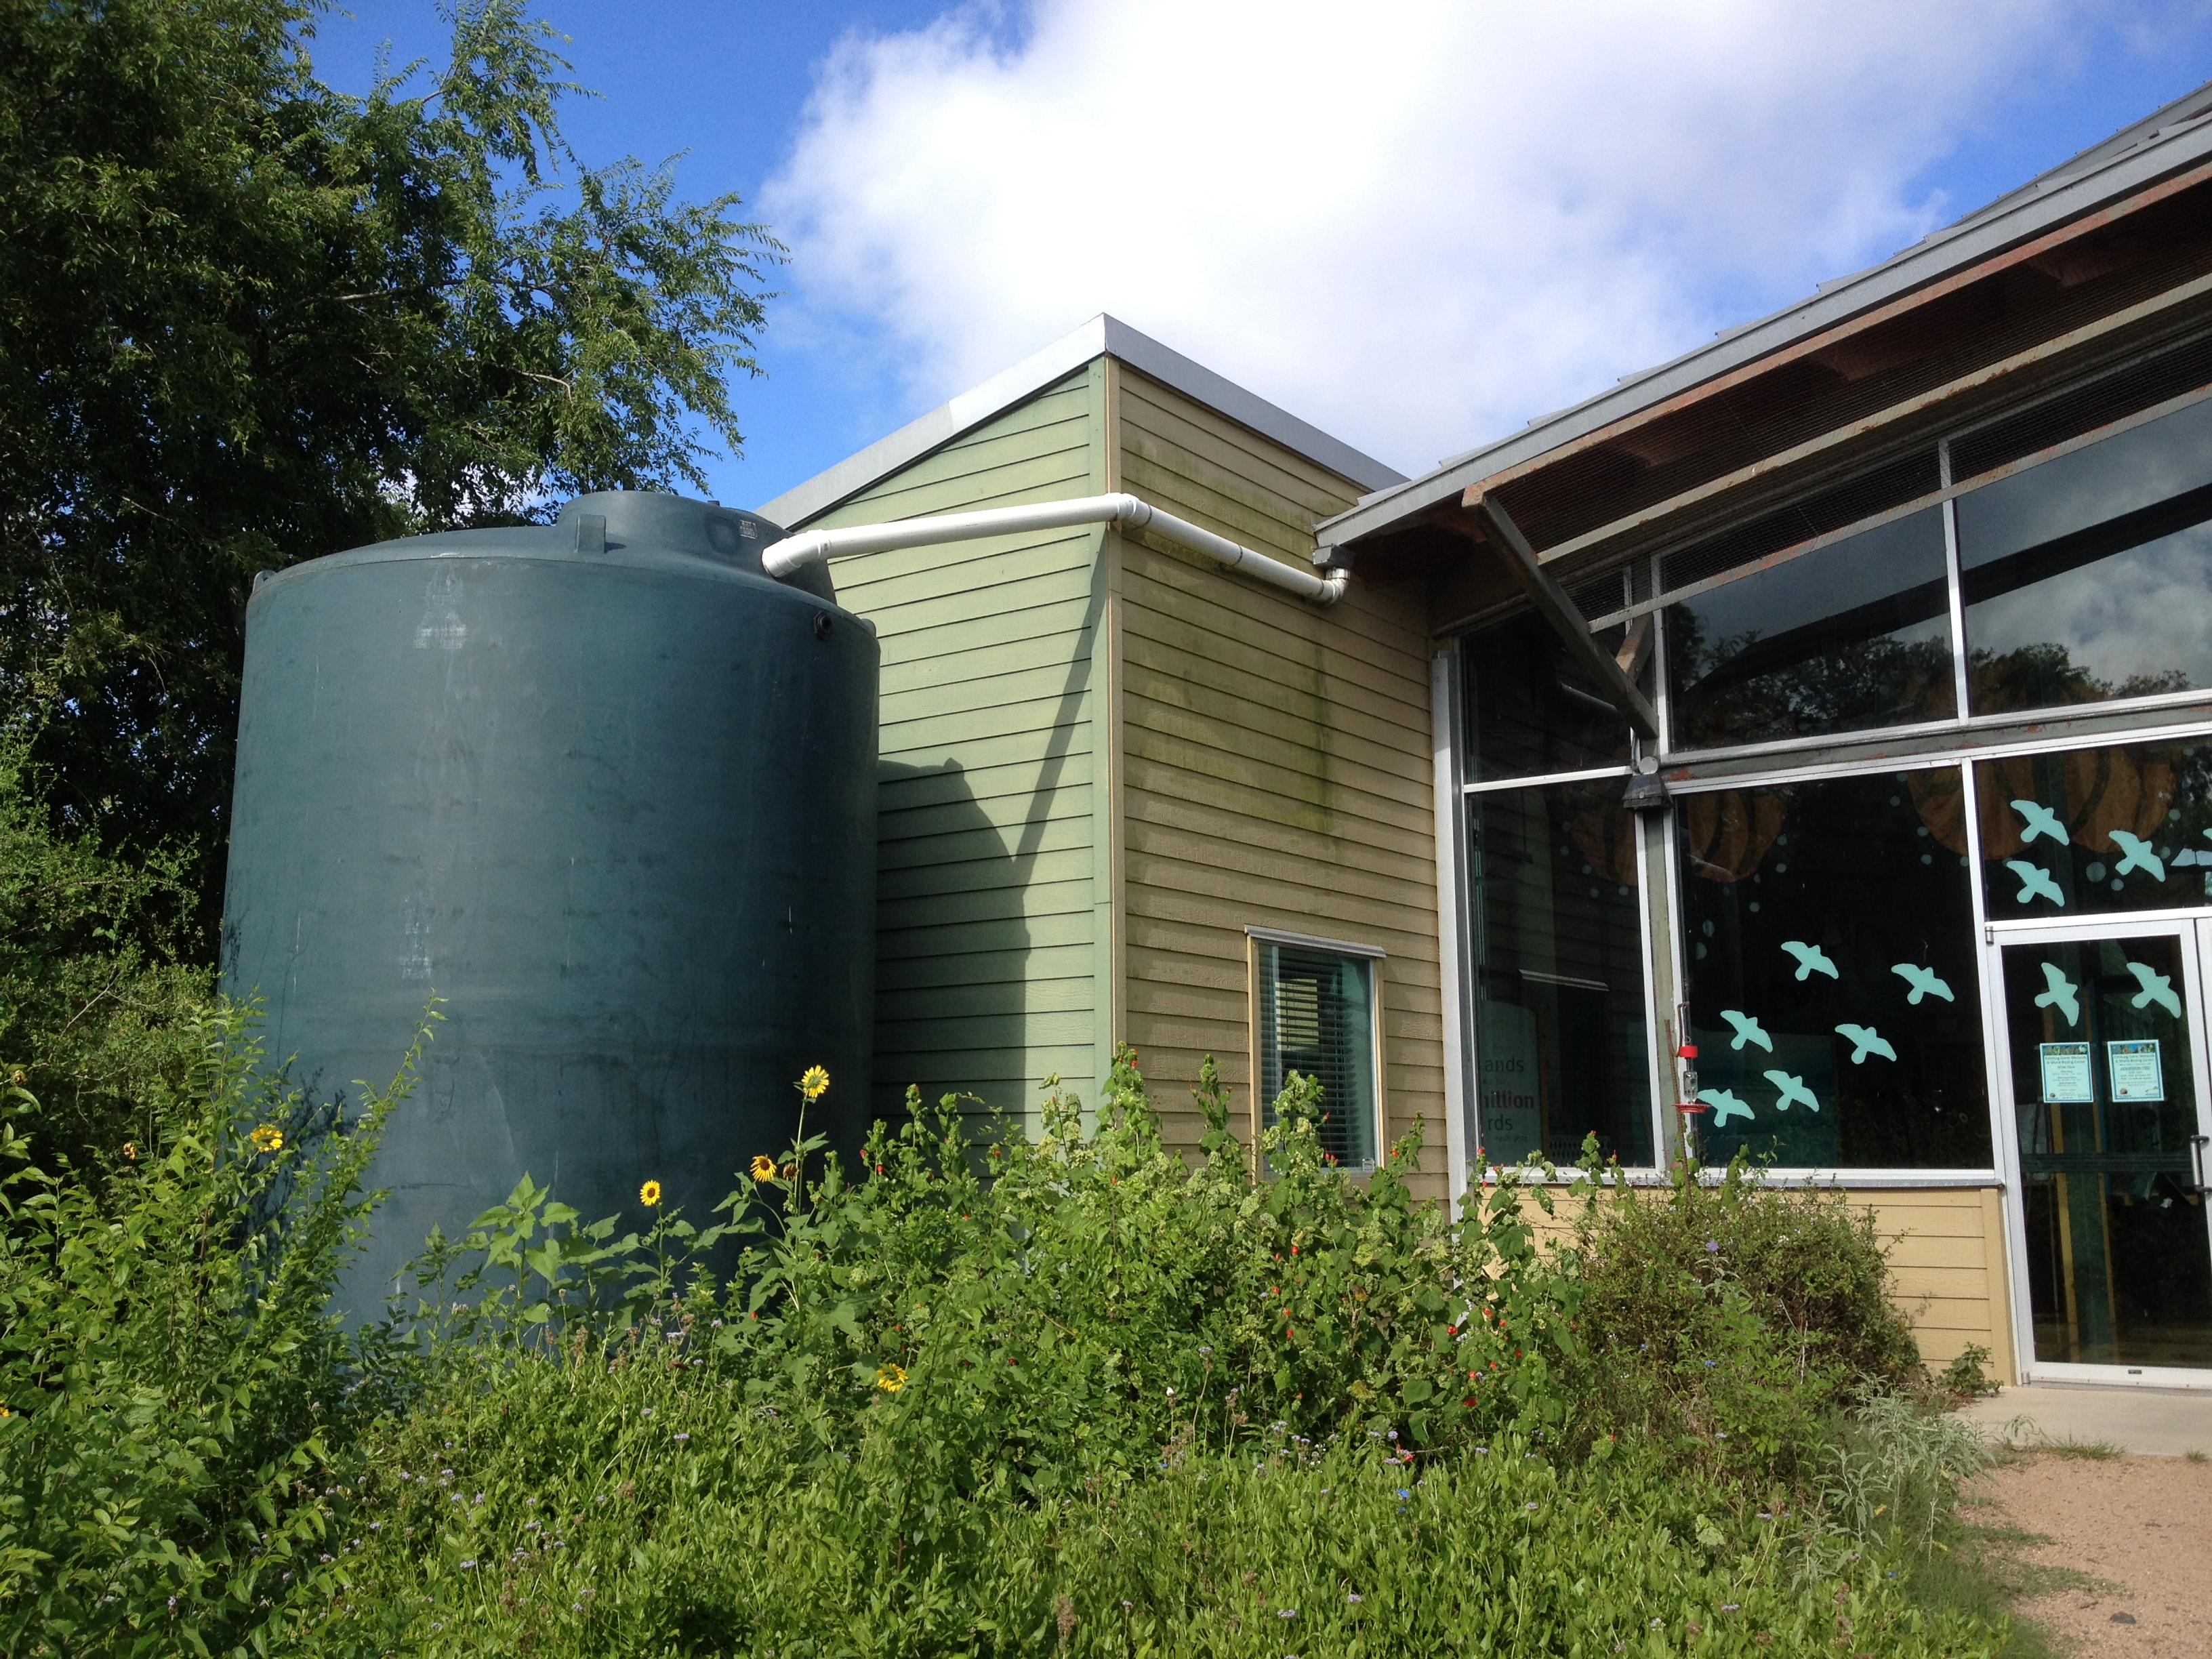 Rainwater Harvesting Soaking In As Way To Conserve Texas